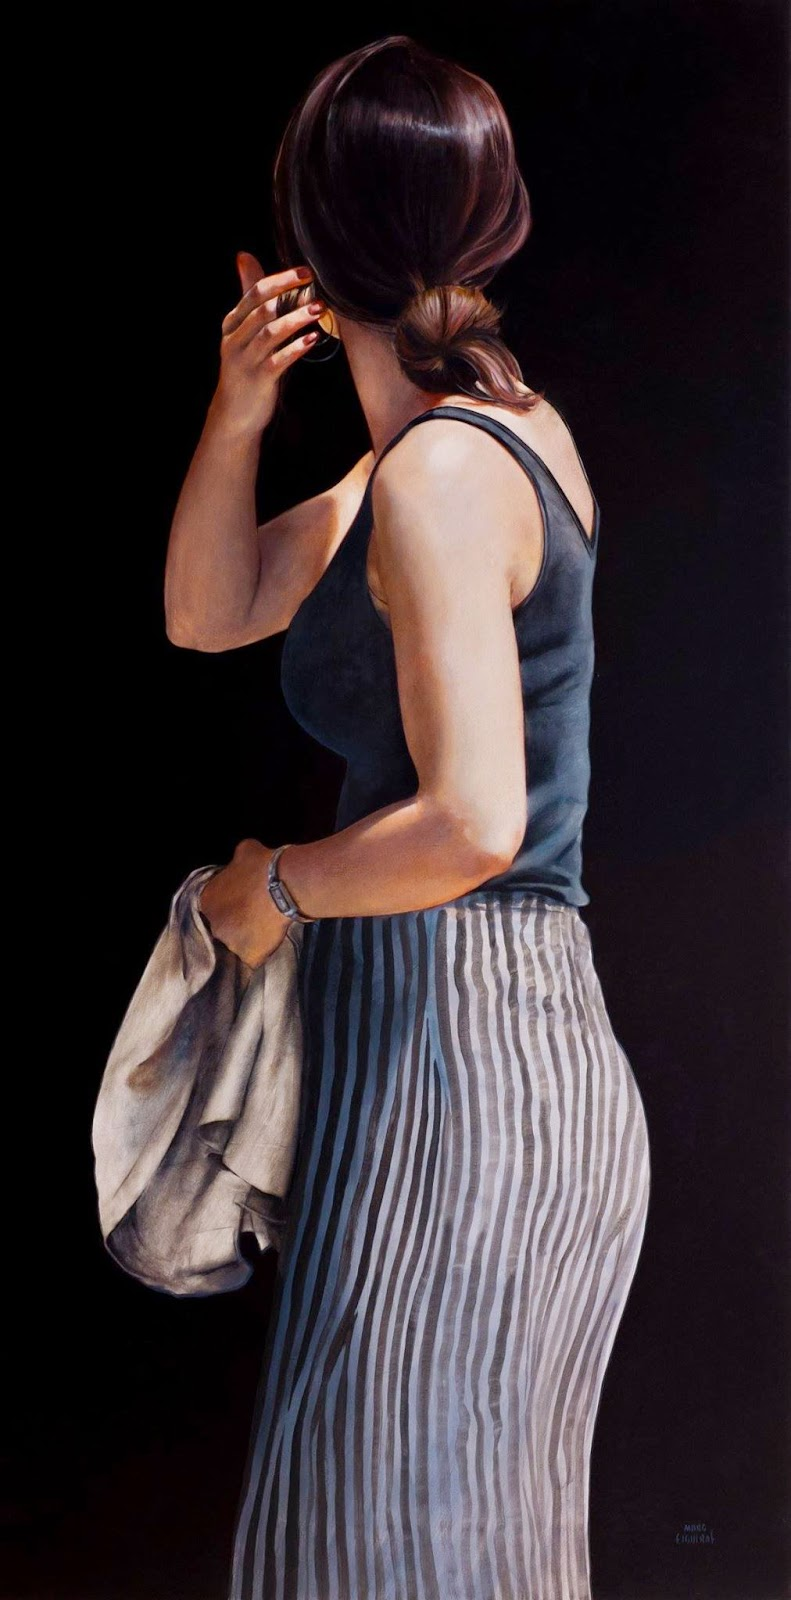 Hyper Realistic Girls Figure Painting By Marc Figueras 2